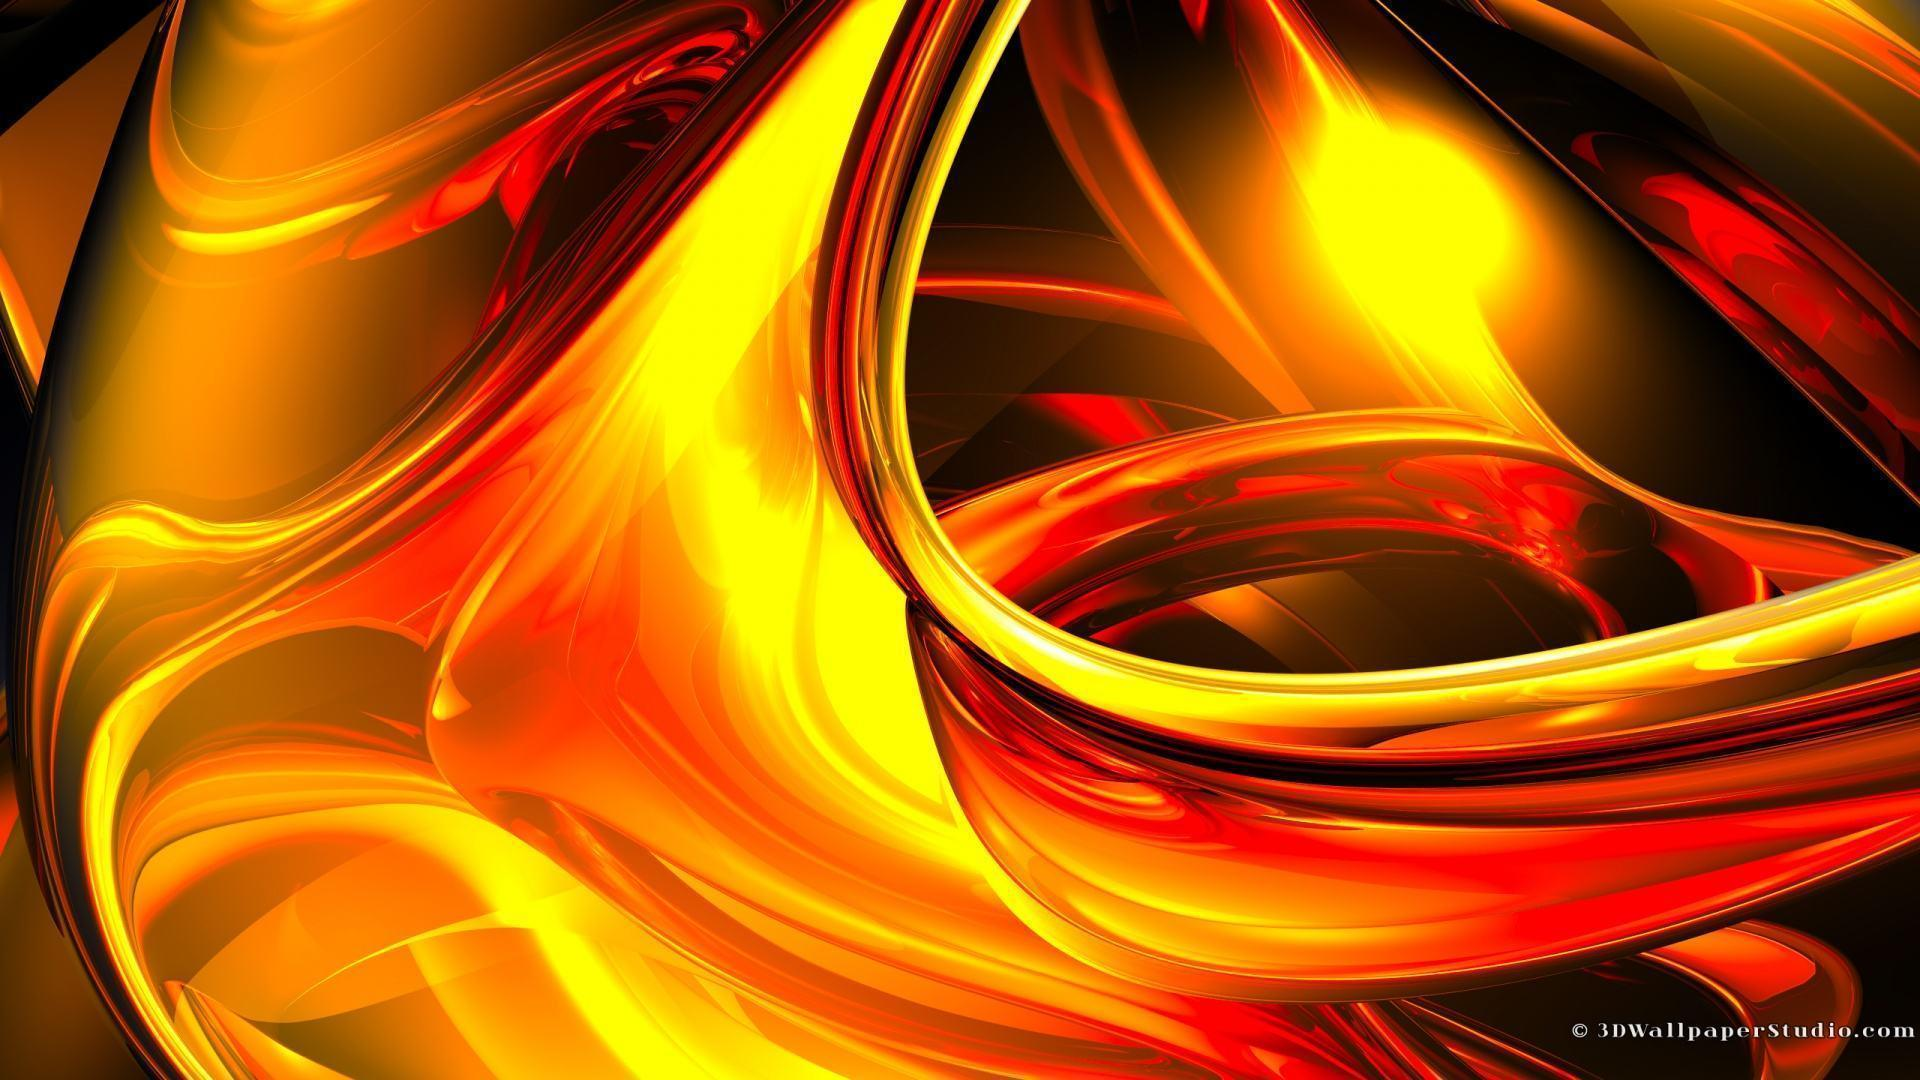 Abstract Wallpapers 1920x1080 - Wallpaper Cave Desktop Backgrounds 1920x1080 Abstract